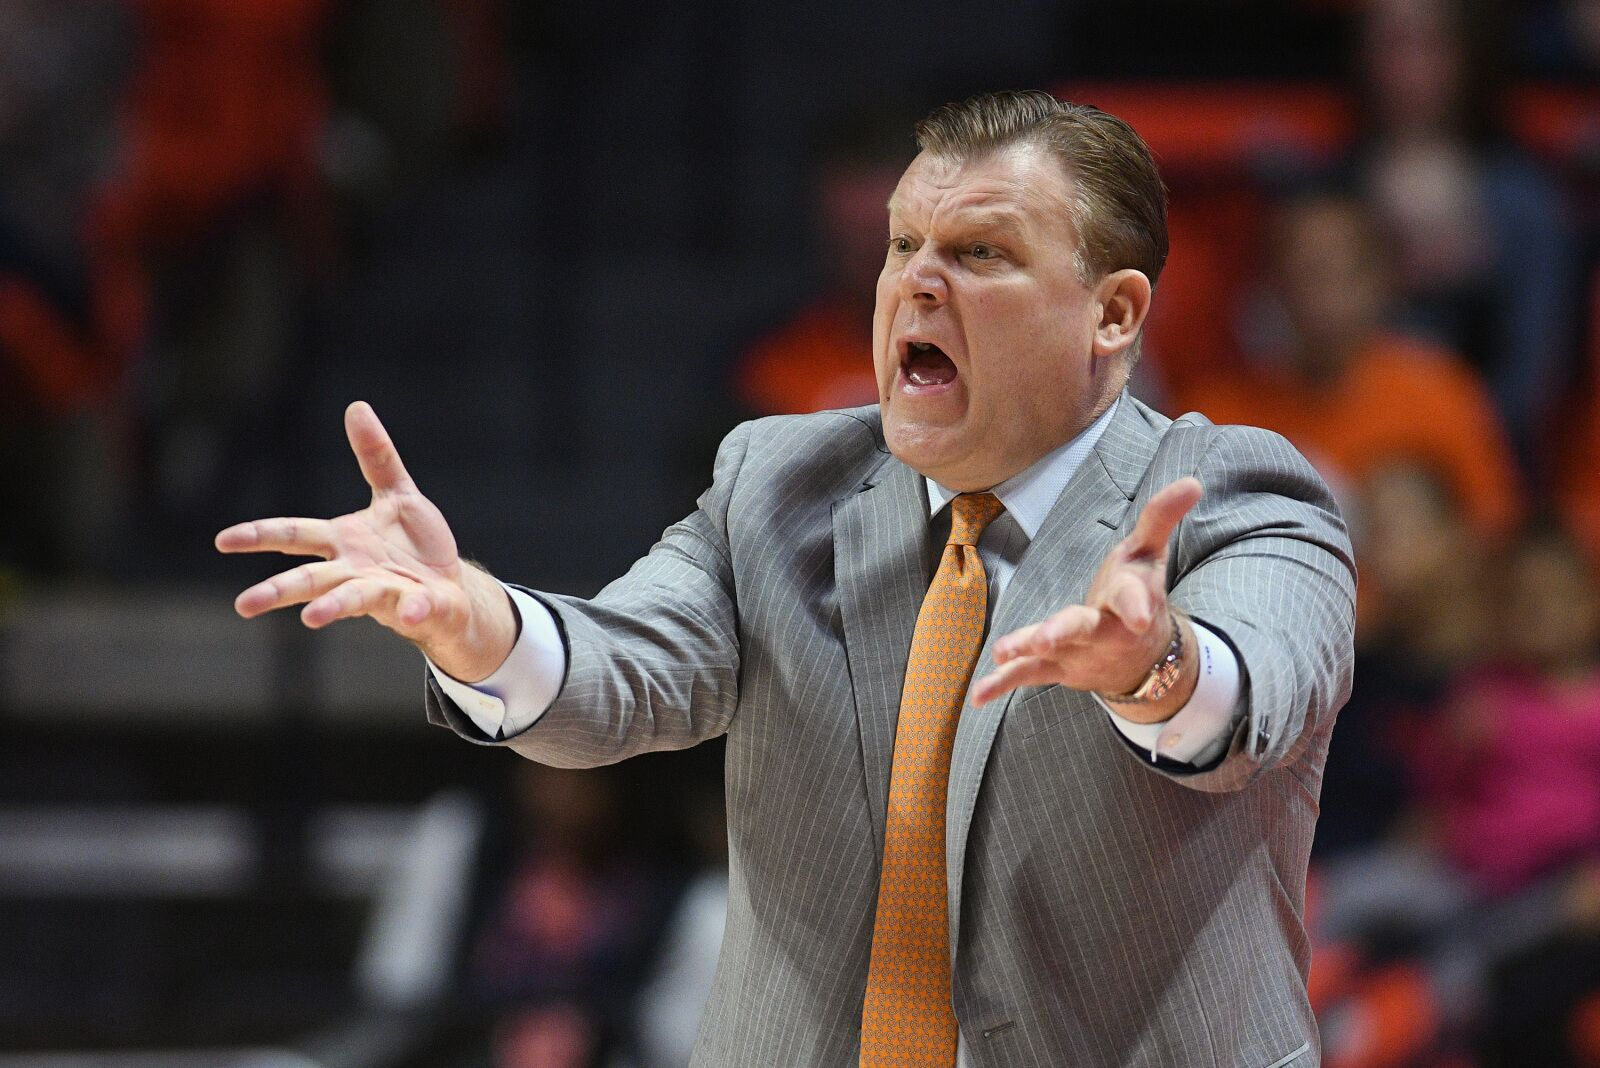 Illinois Basketball: Illini wing depth building with addition of Grandison